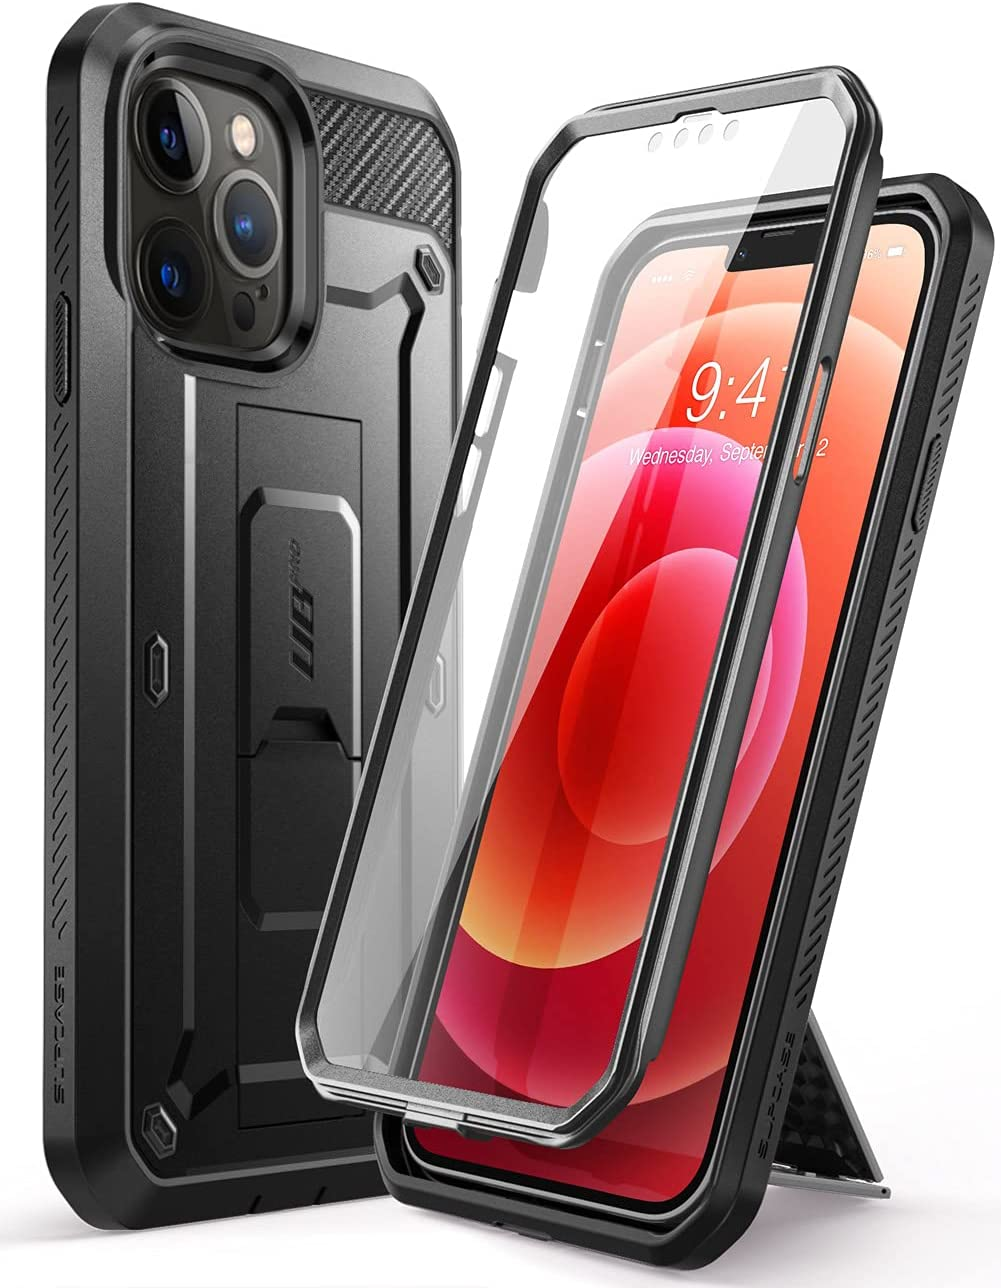 SUPCASE Unicorn Beetle Pro Series Case for iPhone 13 Pro Max (2021 Release) 6.7 Inch, Built-in Screen Protector Full-Body Rugged Holster Case (Black)